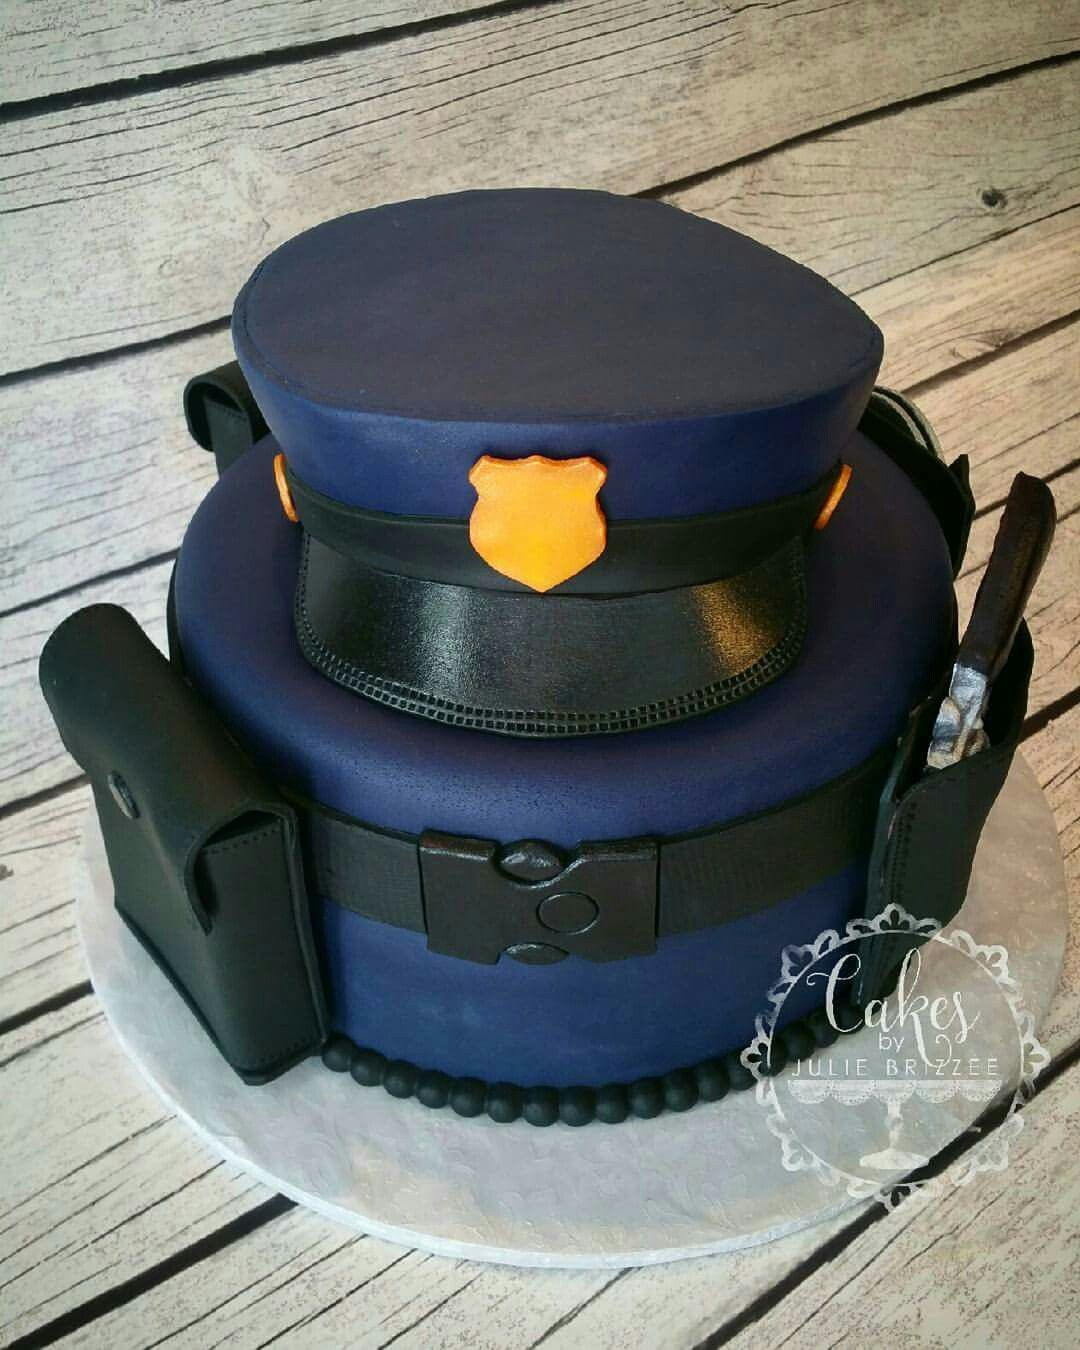 Nypd Cake